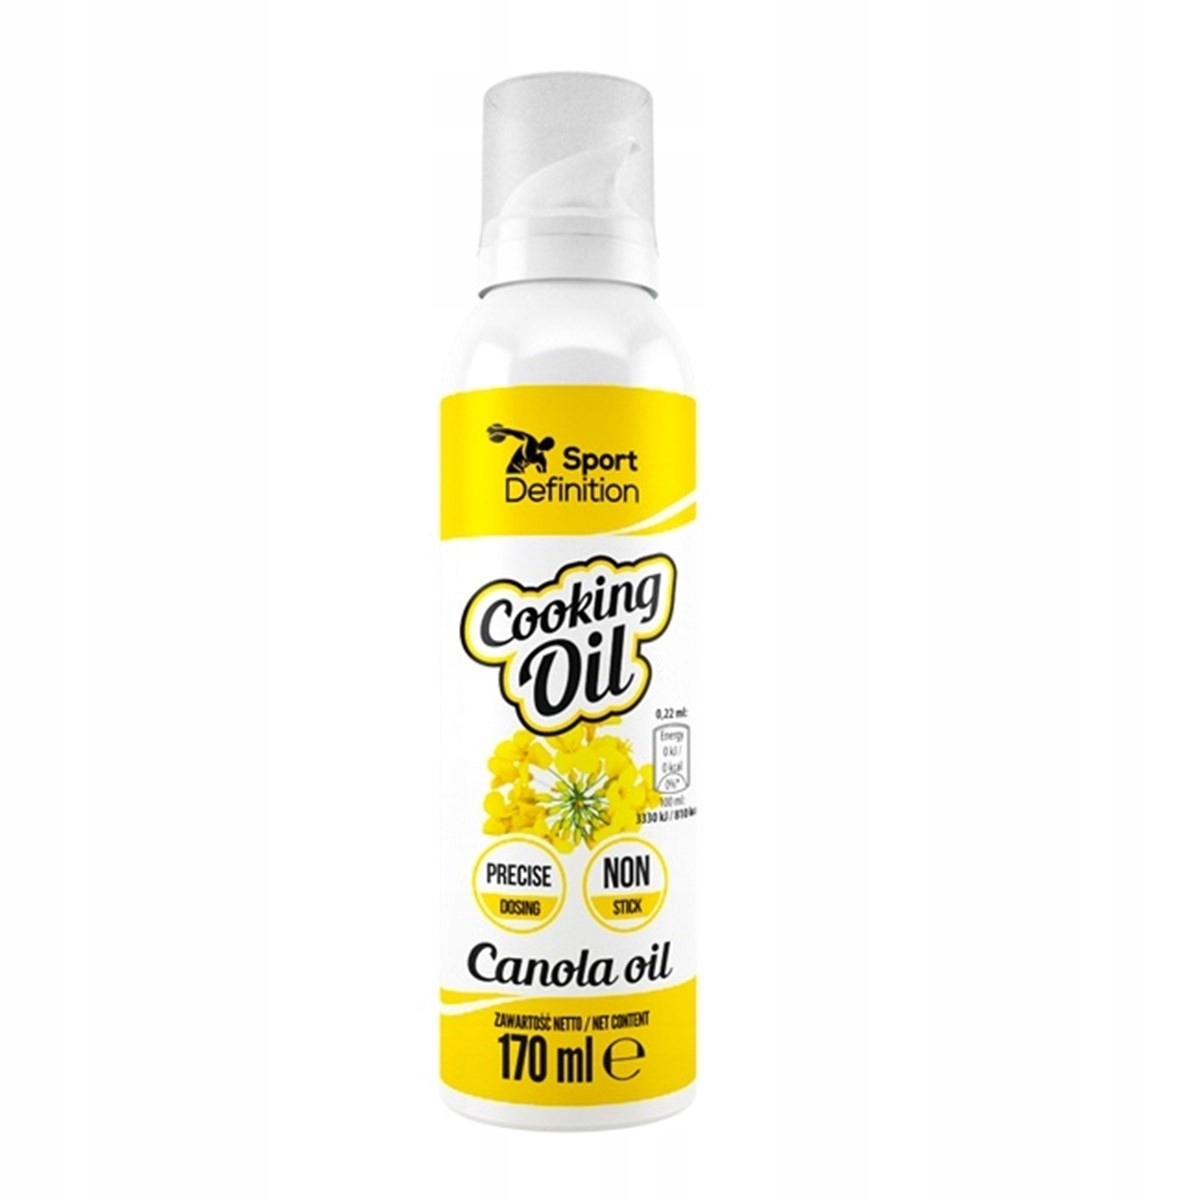 Sport Definition Cooking OIL Canola Oil 170 ml